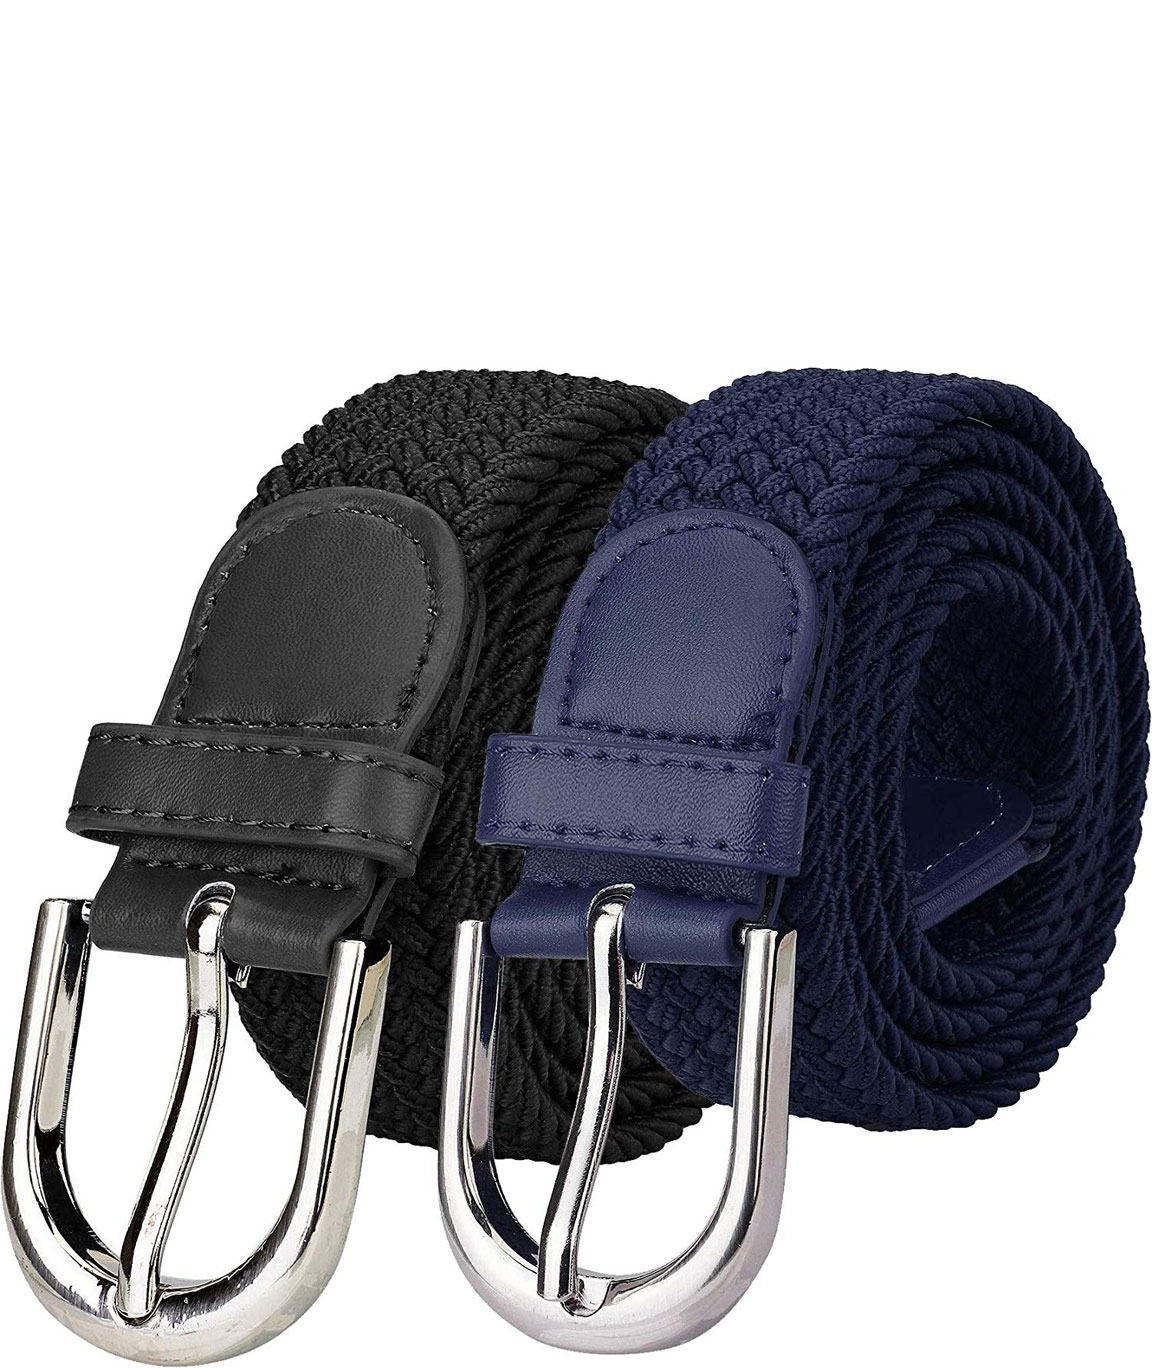 ZORO Stretchable braided cotton belt for women, ladies belt, grey, Blue, brown/tan and green color Combo of 2 pcs